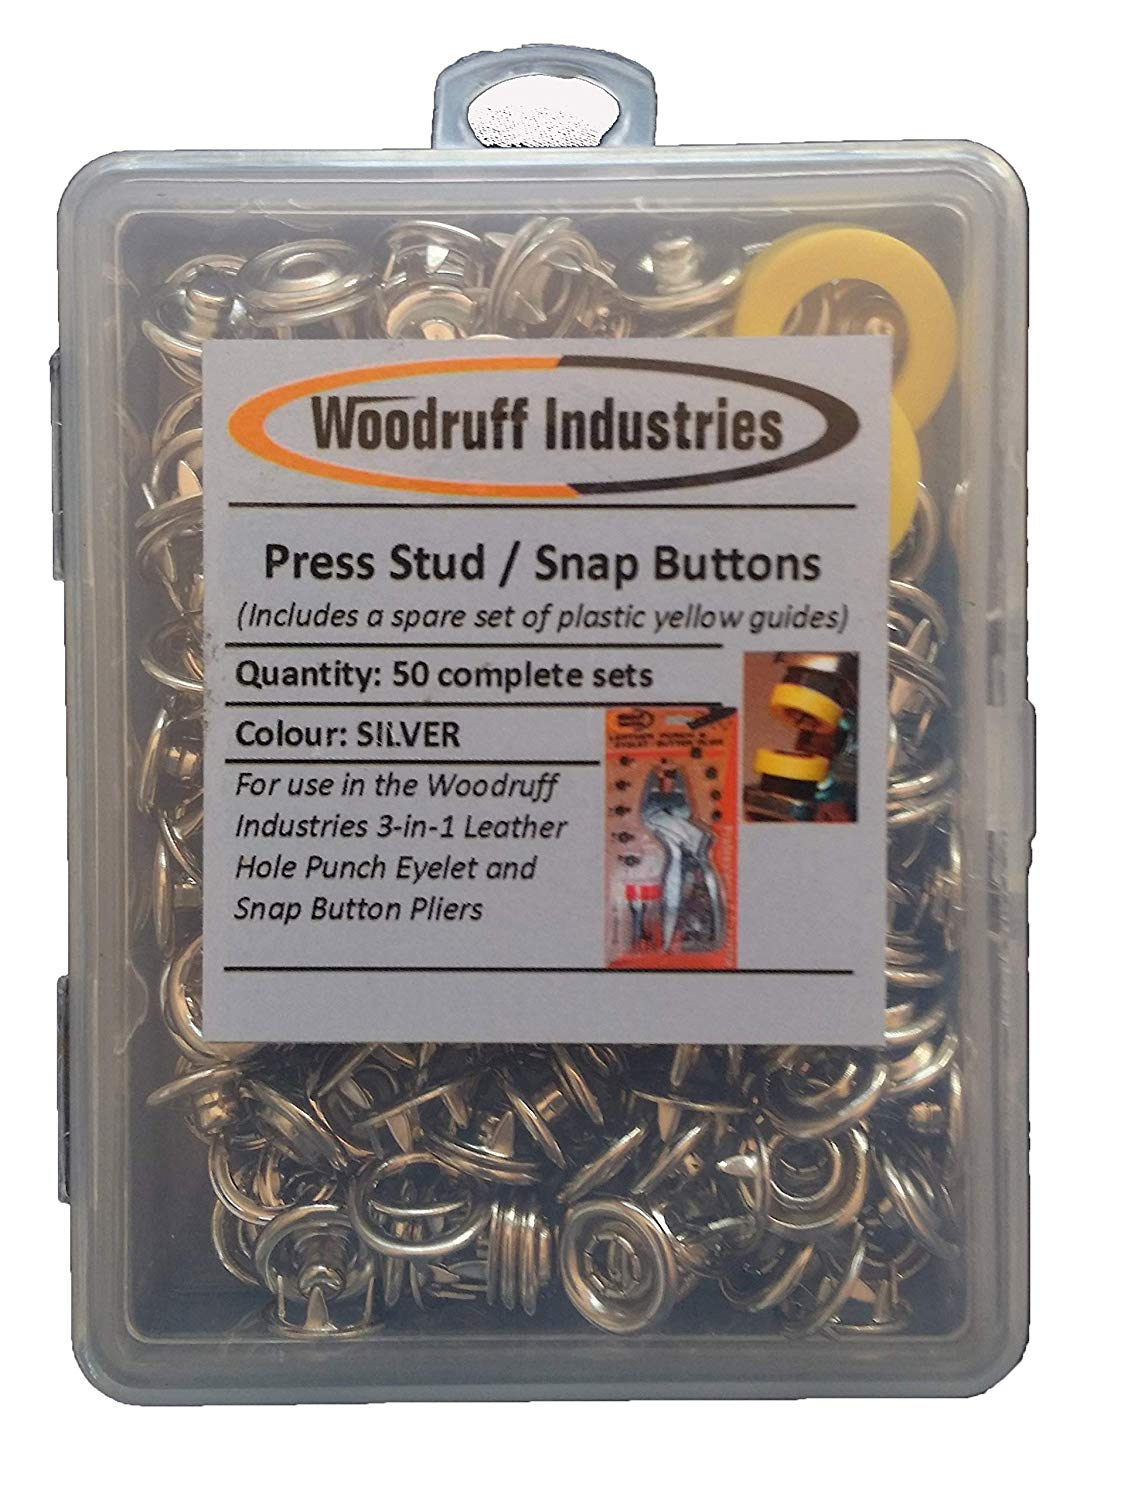 50 Complete Sets Metal SNAP (PRESS STUD) BUTTONS | SILVER Colour | for Arts, Crafts, Shoes, Clothes, Scrapbooking | 50 sets requires 200 component pieces, comes with replacement yellow guides | Nickel